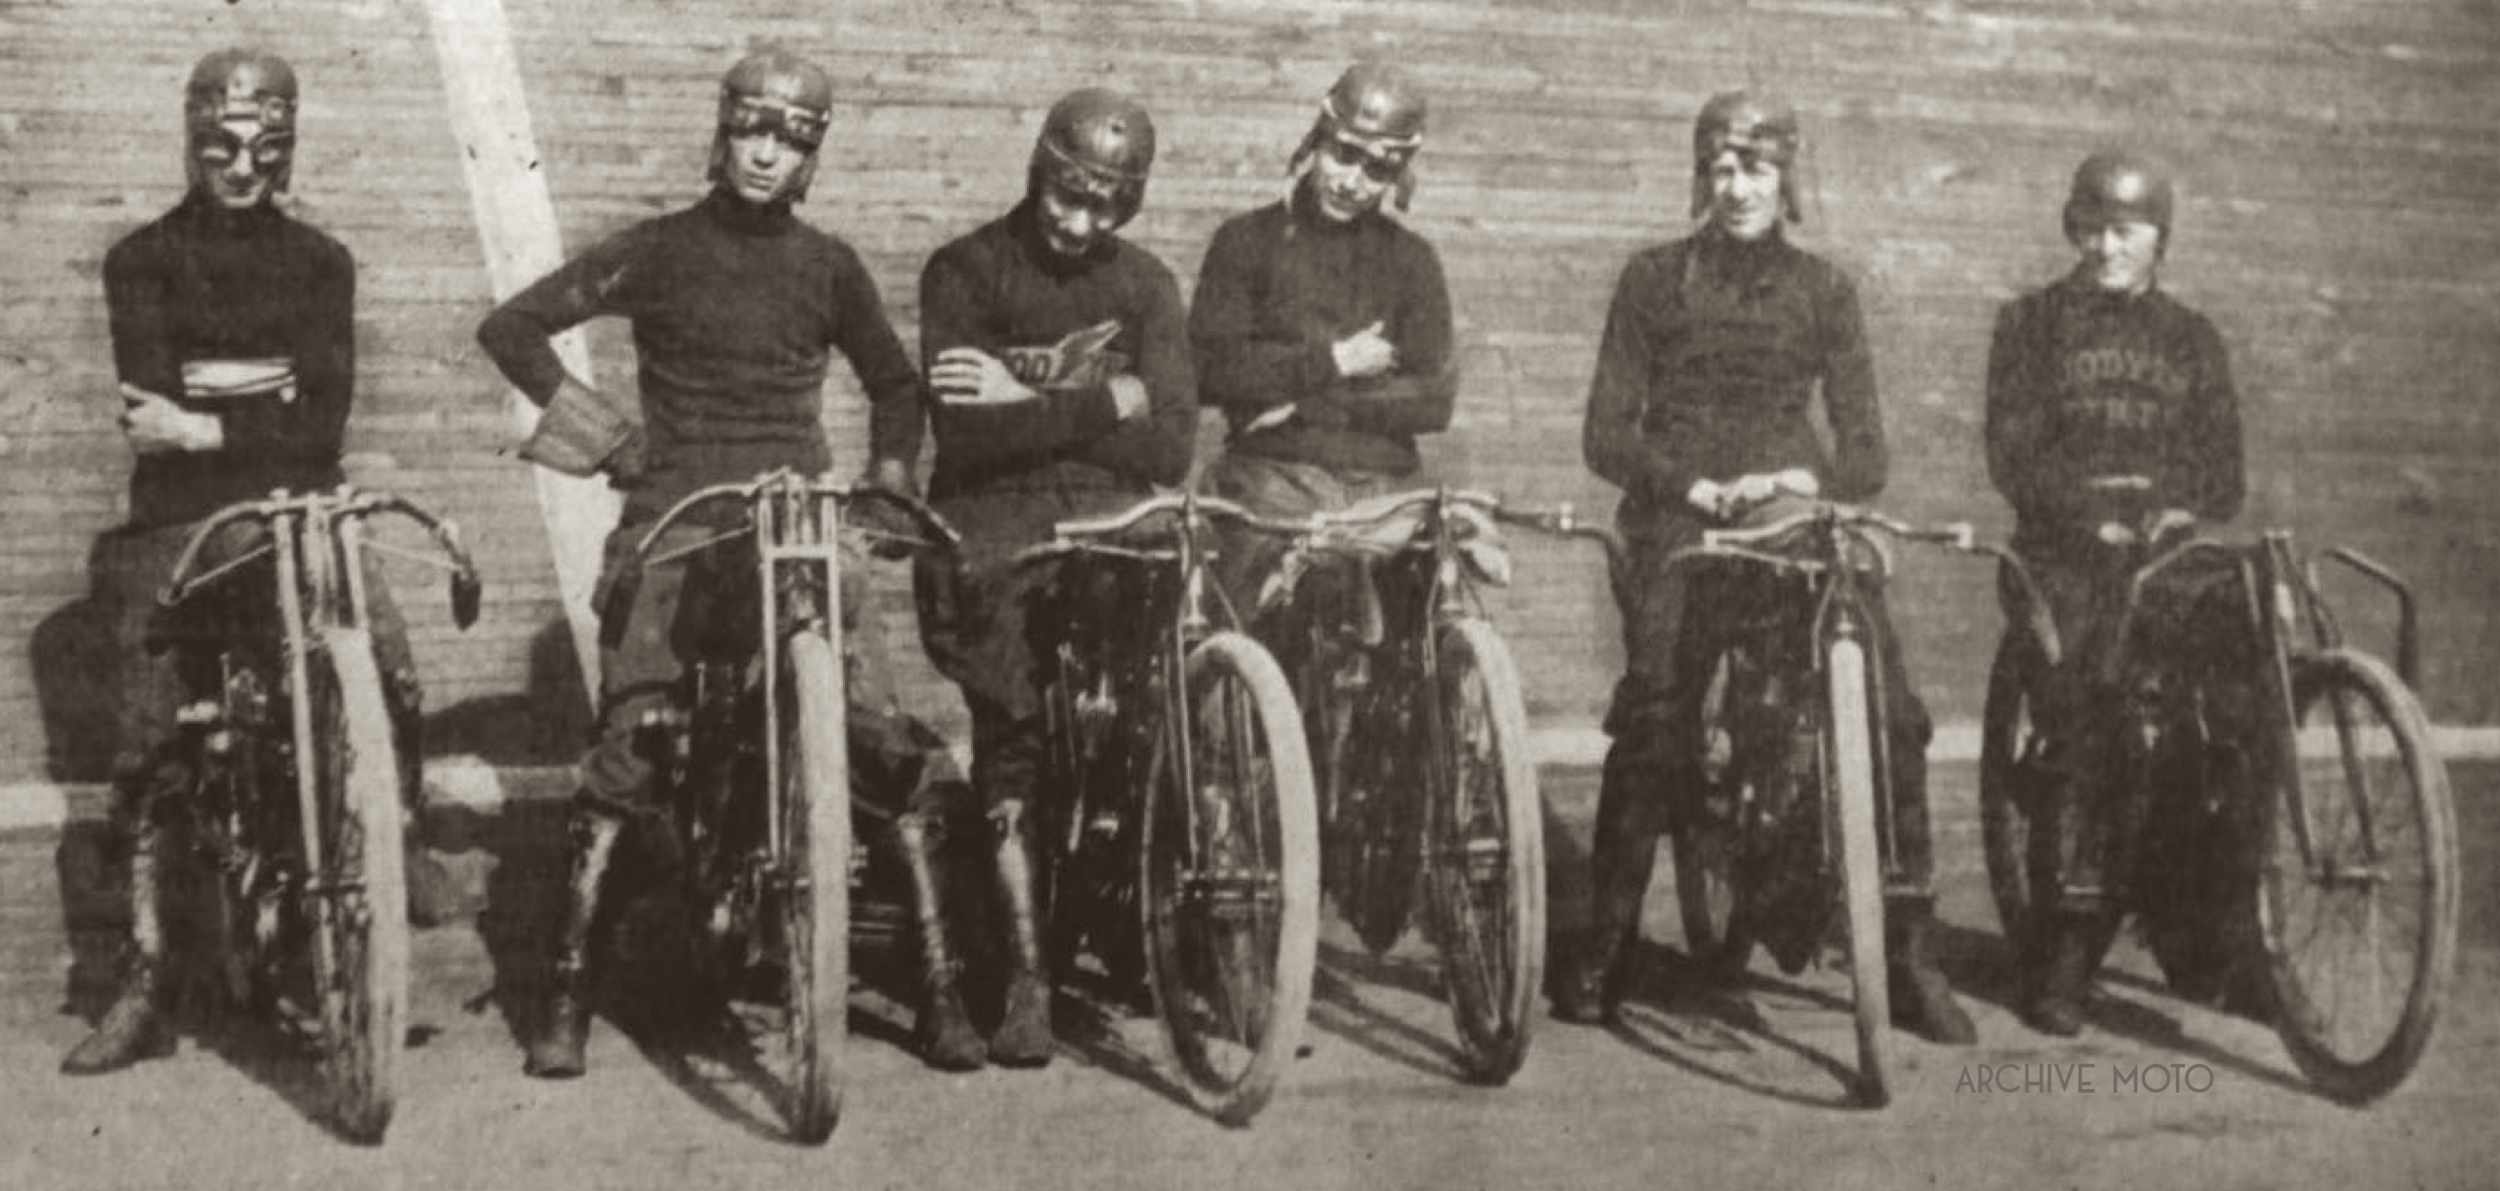 Red Parkhurst is seen here, mounted on an Indian 5th from the left, the track at his back inside the newly constructed Milwaukee Motordrome at the start of the opening season, Summer 1913. Photographed alongside Parkhurst from left to right are Glen Stokes, Jimmy Cox, Eddie Bowen, Danny Armstrong, (Parkhurst), and William Hamilton.